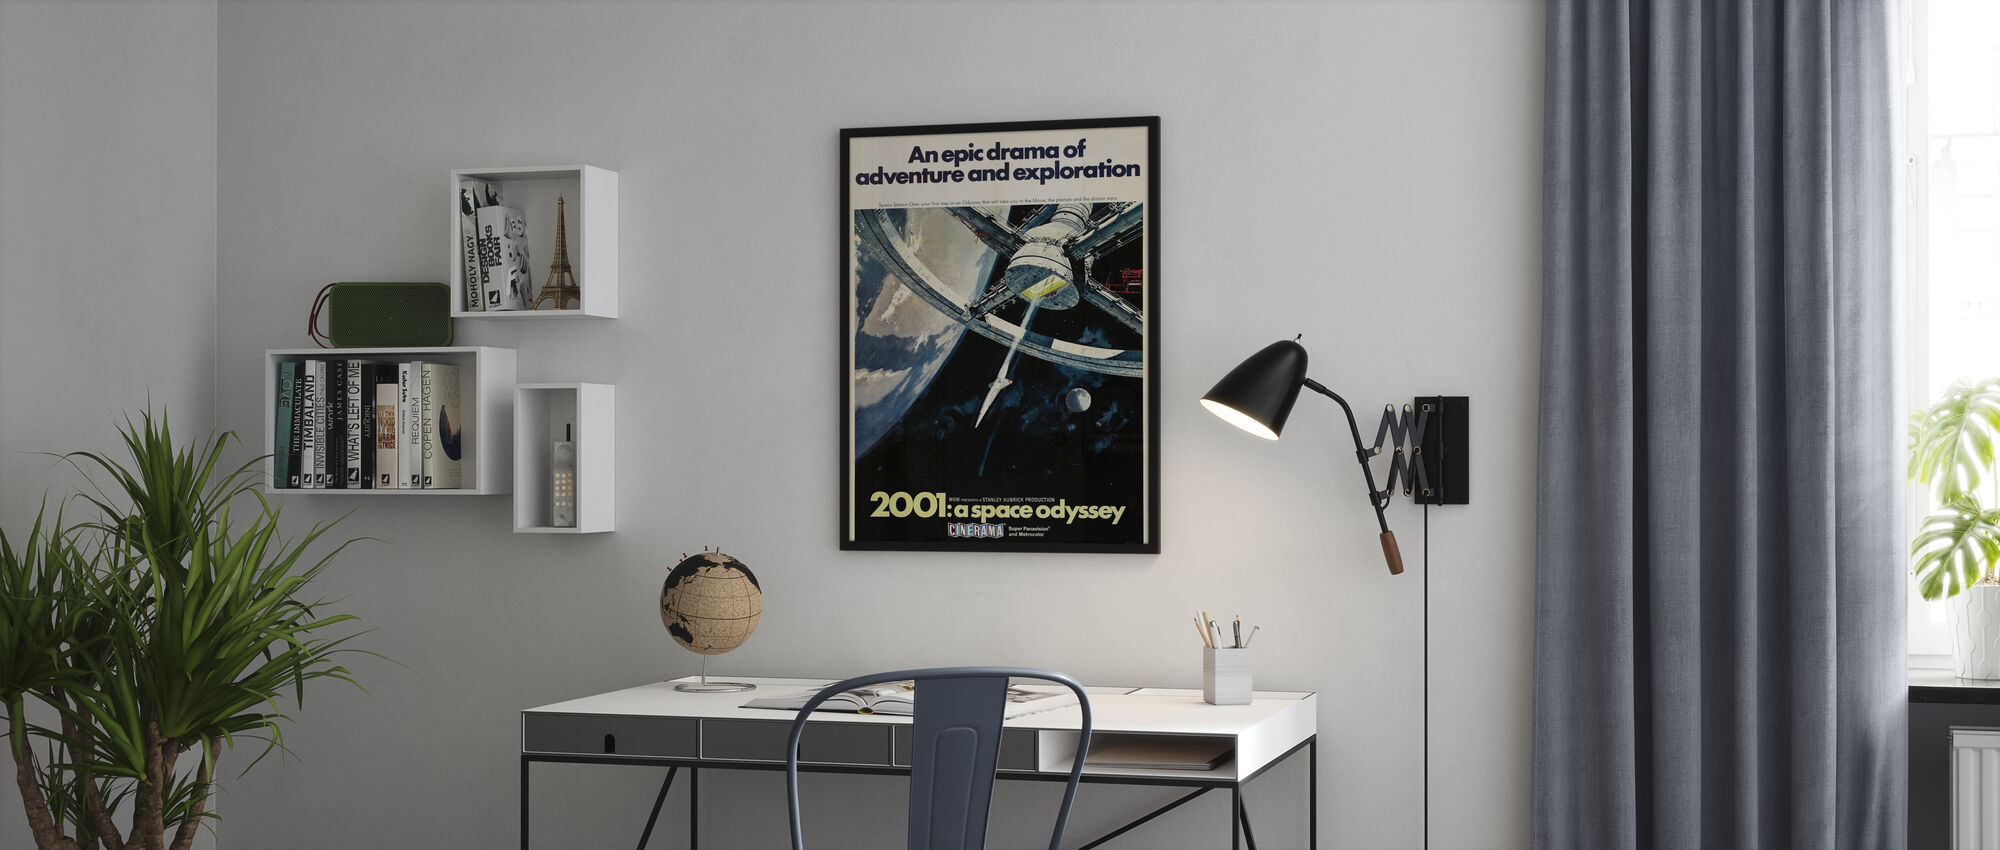 2001 A Space Odyssey - Poster - Office